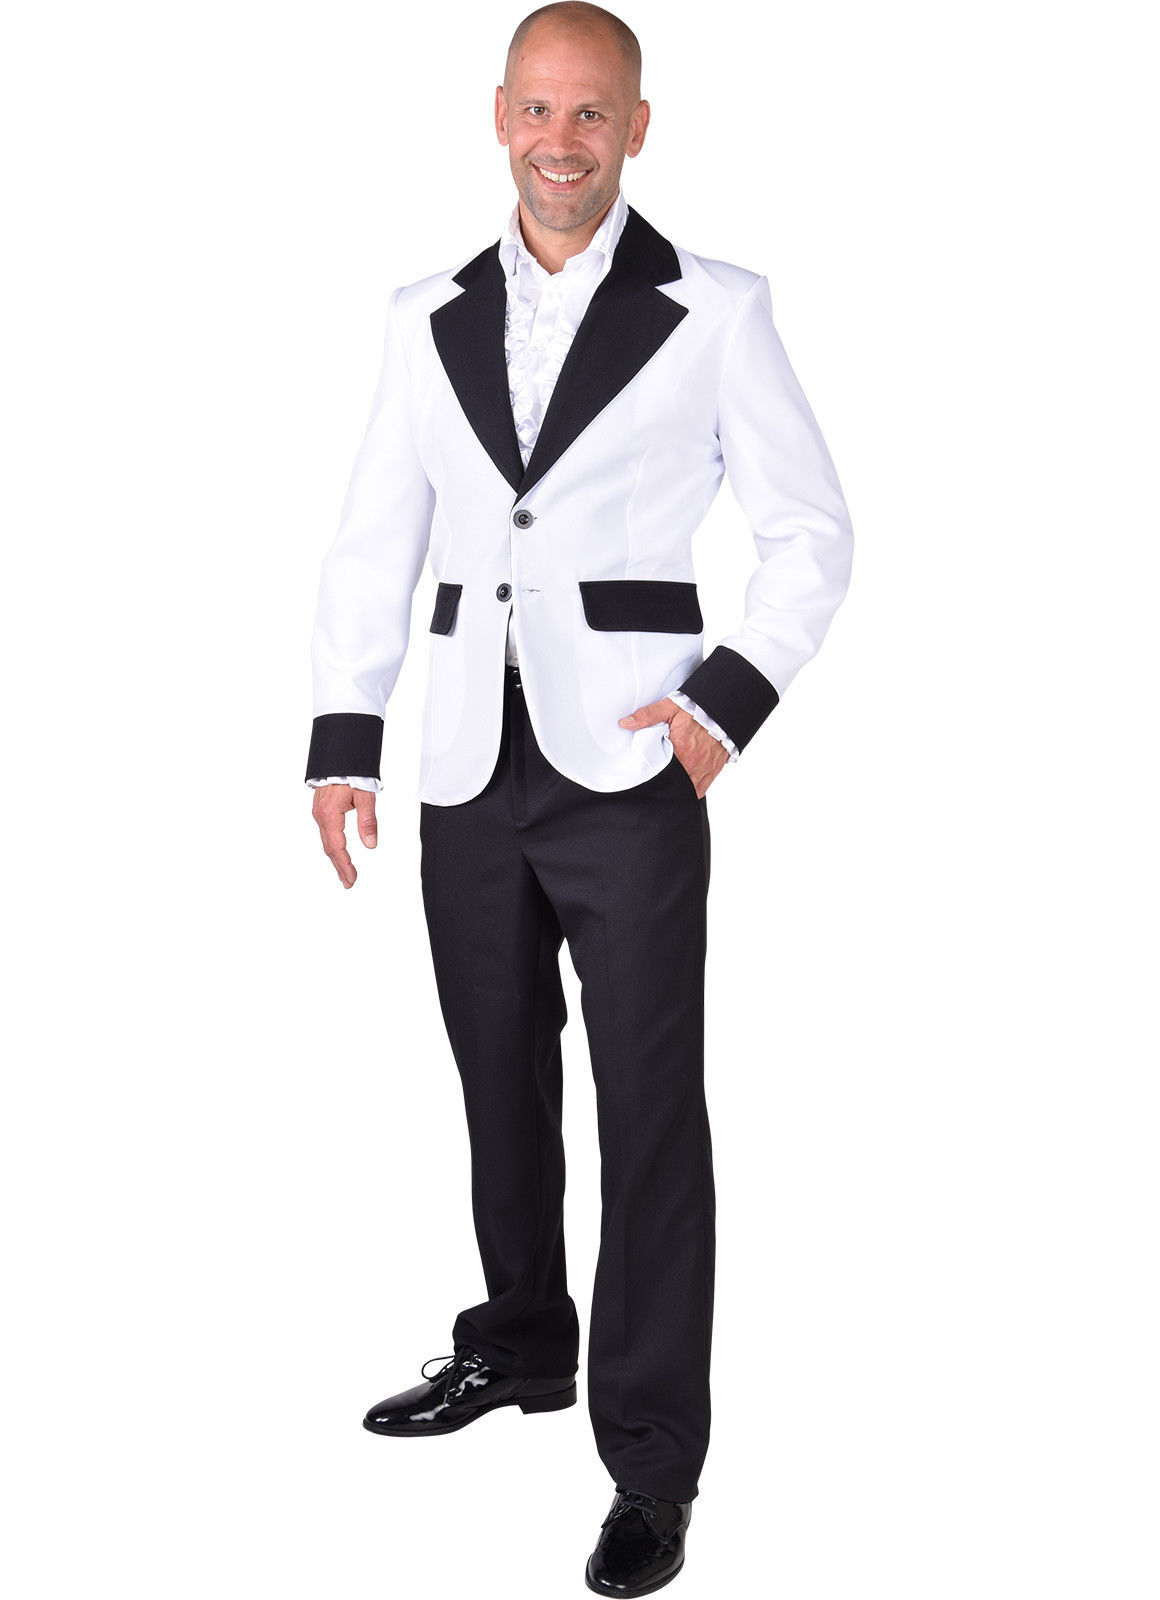 Show Jacket - White - Teddy Boy / Band / Hollywood / White Christmas  - XS-XXL